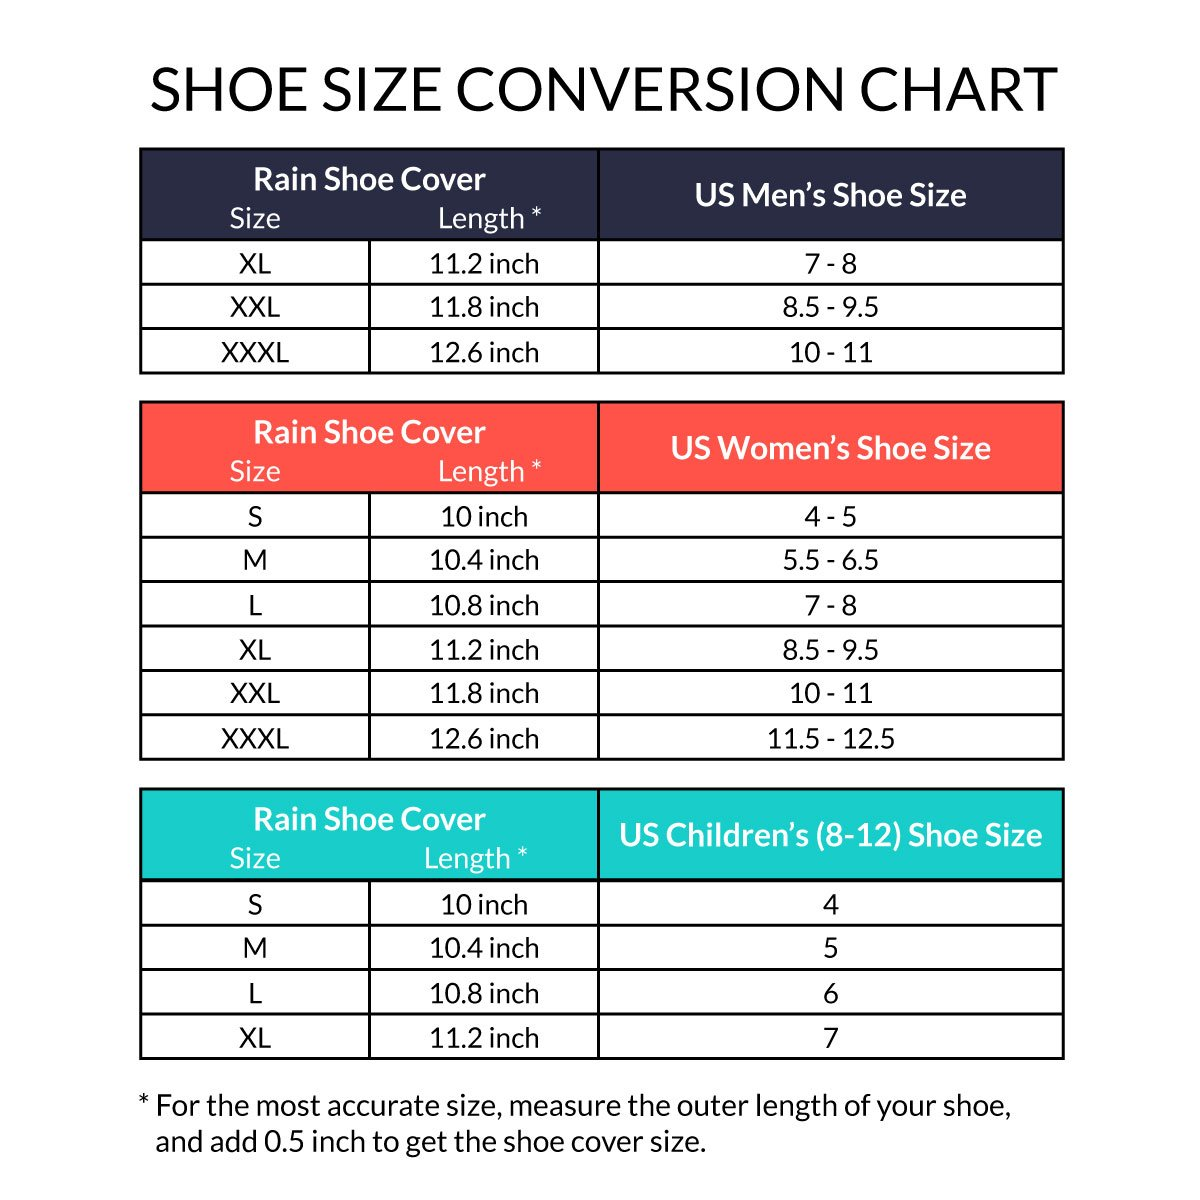 Shoes size conversion chart images free any chart examples snow rain conversion chart image collections free any chart examples rain snow conversion chart gallery free nvjuhfo Images